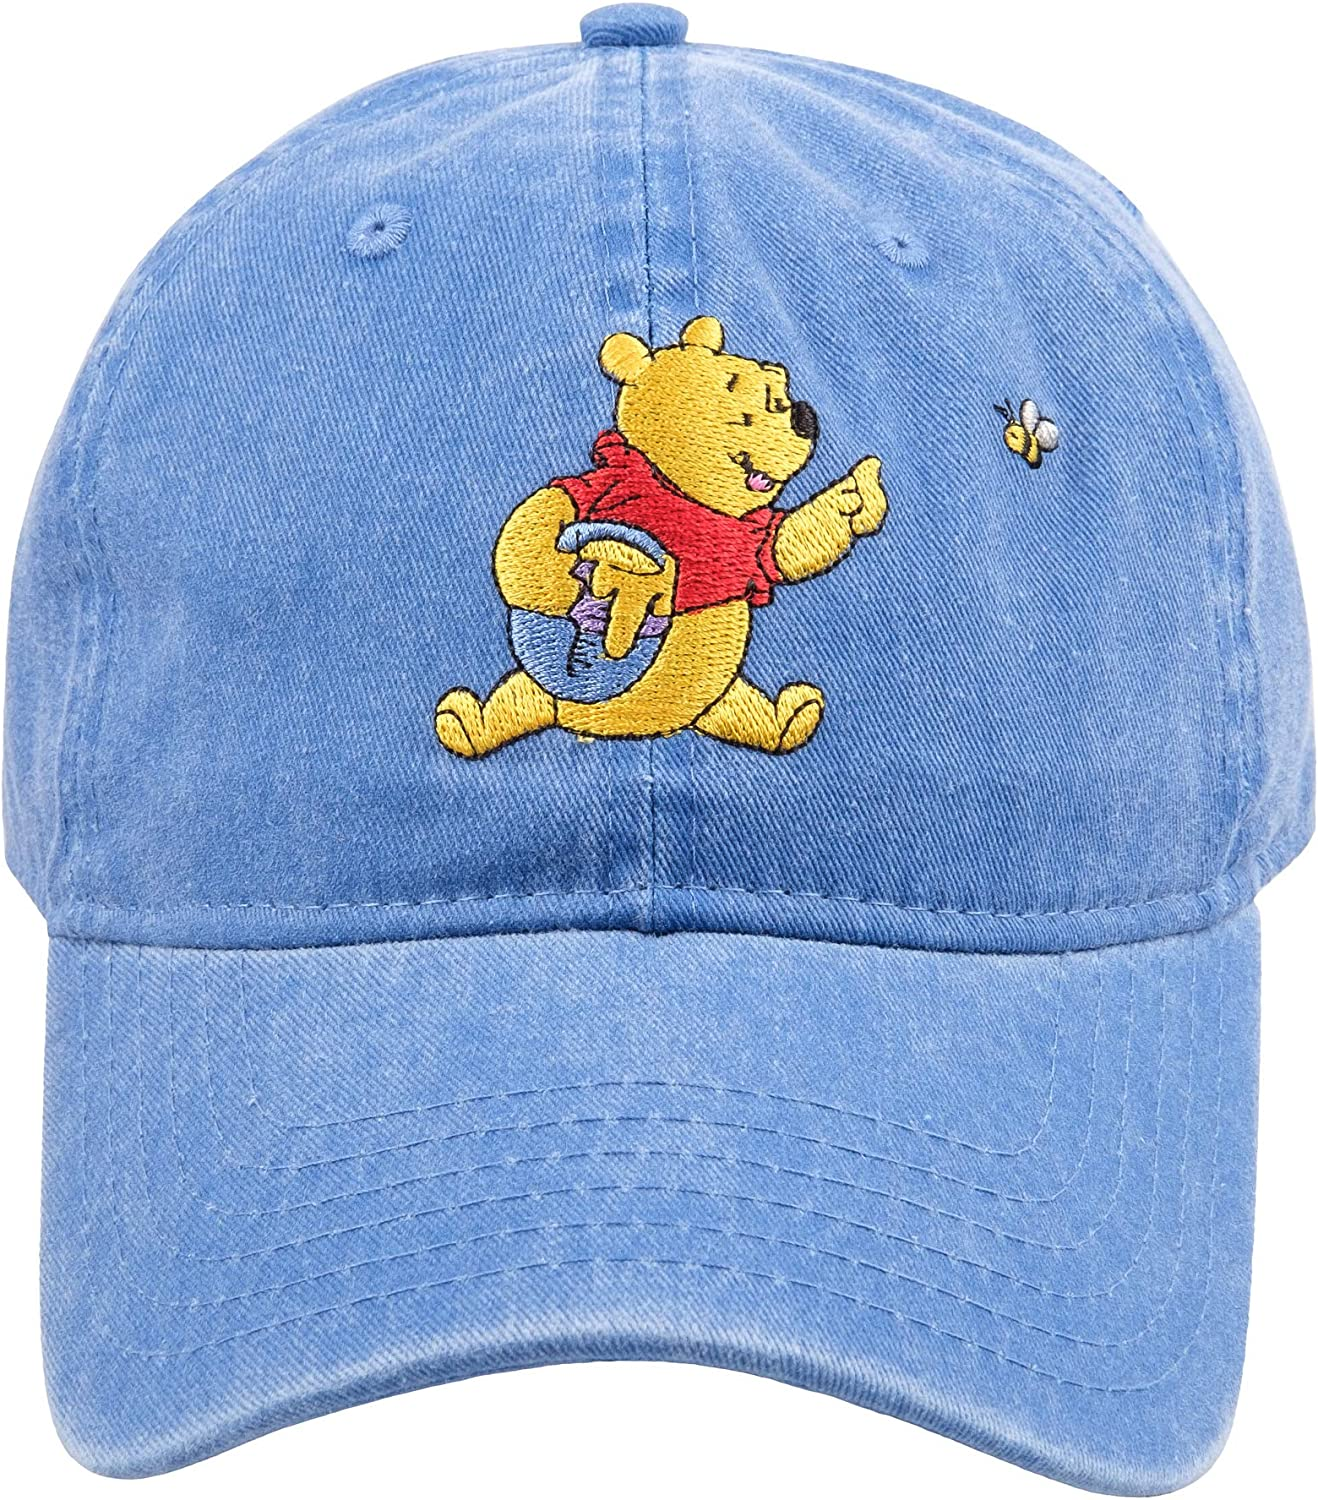 Concept One Disney's Winnie The Pooh with Honey Pot Embroidered Cotton Adjustable Dad Hat with Curved Brim